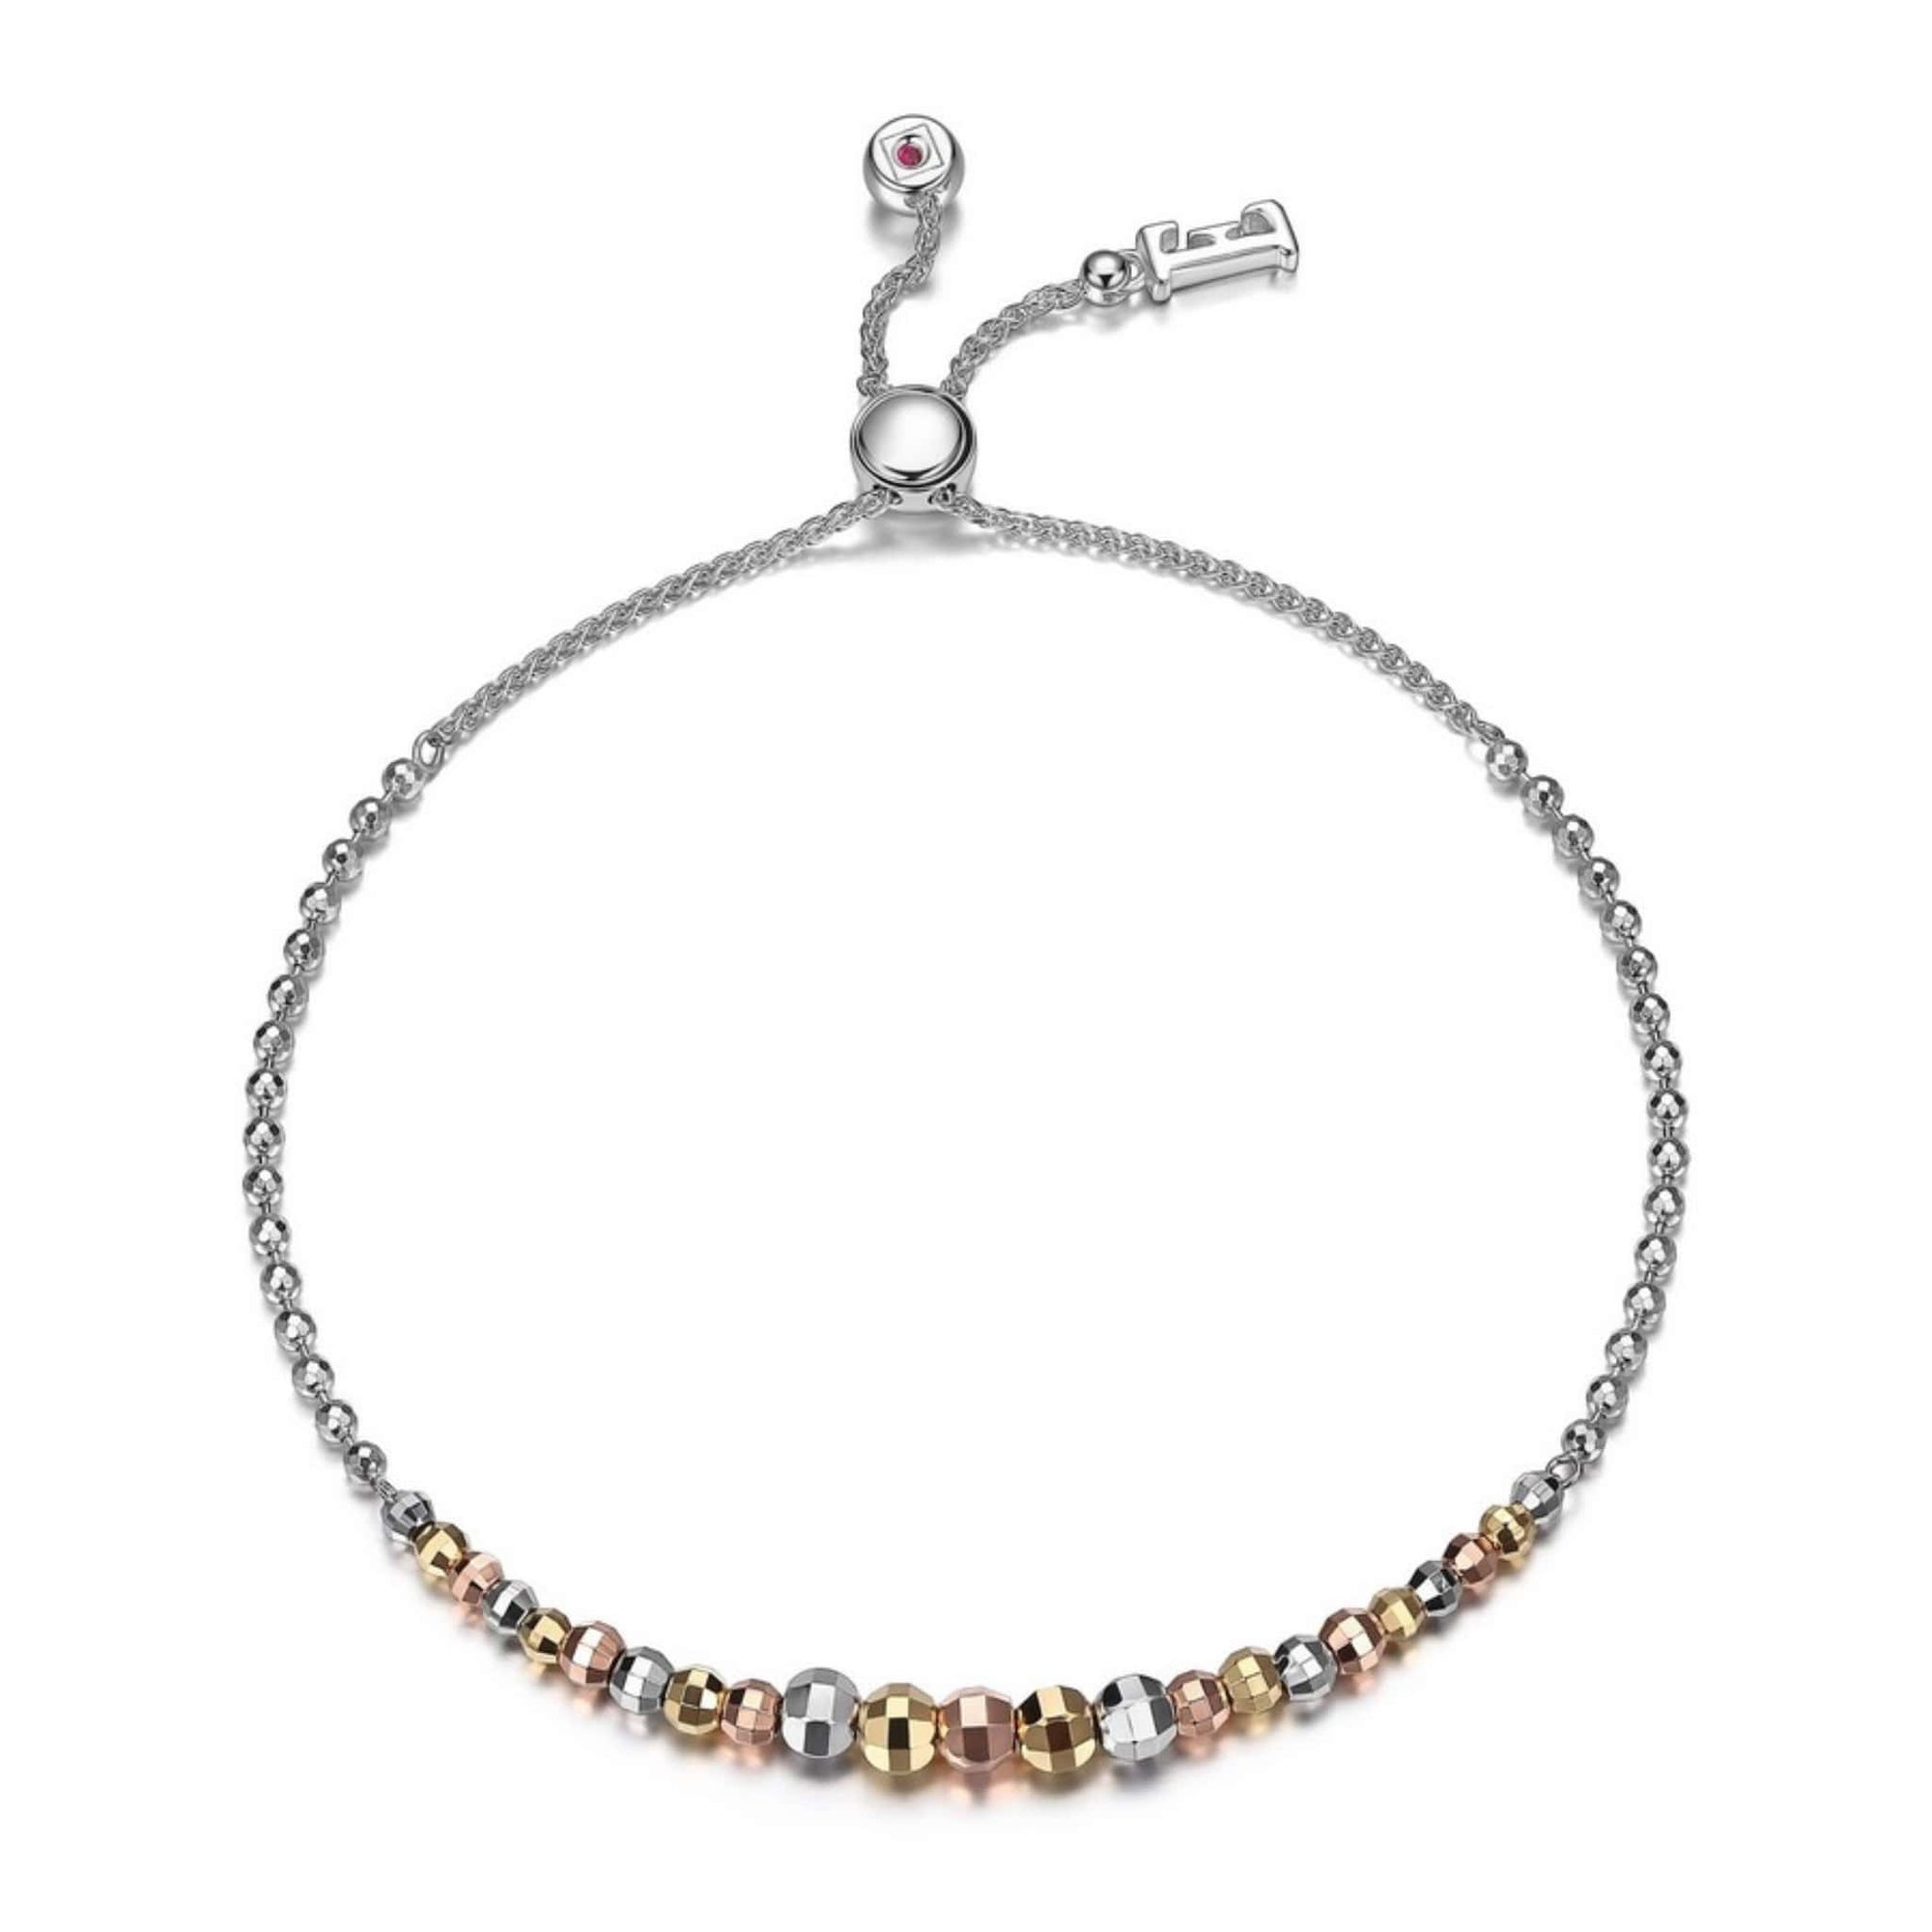 ELLE Waterfall Tri-Colour Bead Bolo Bracelet at Arman's Jewellers